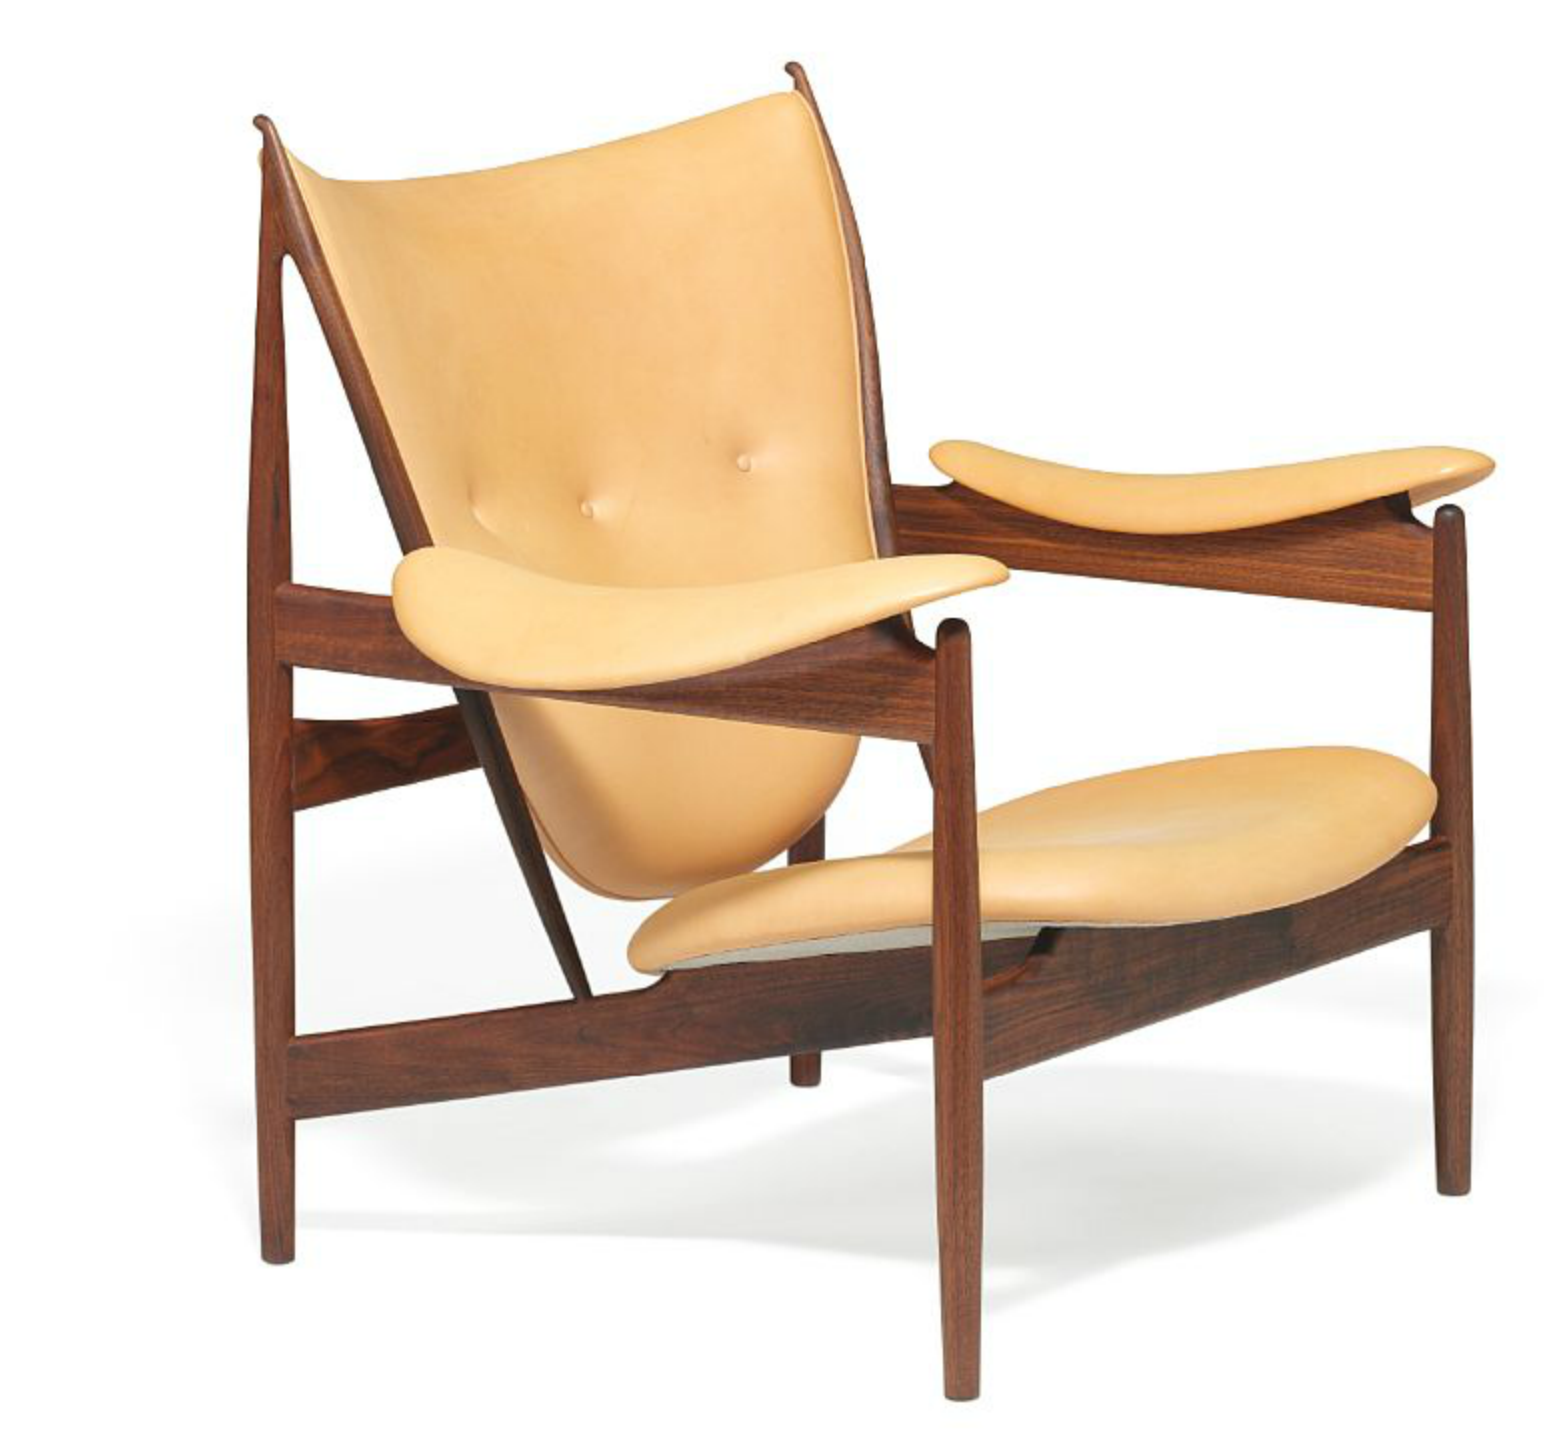 finn juhl chieftain chair by niels roth andersen sold at bruun